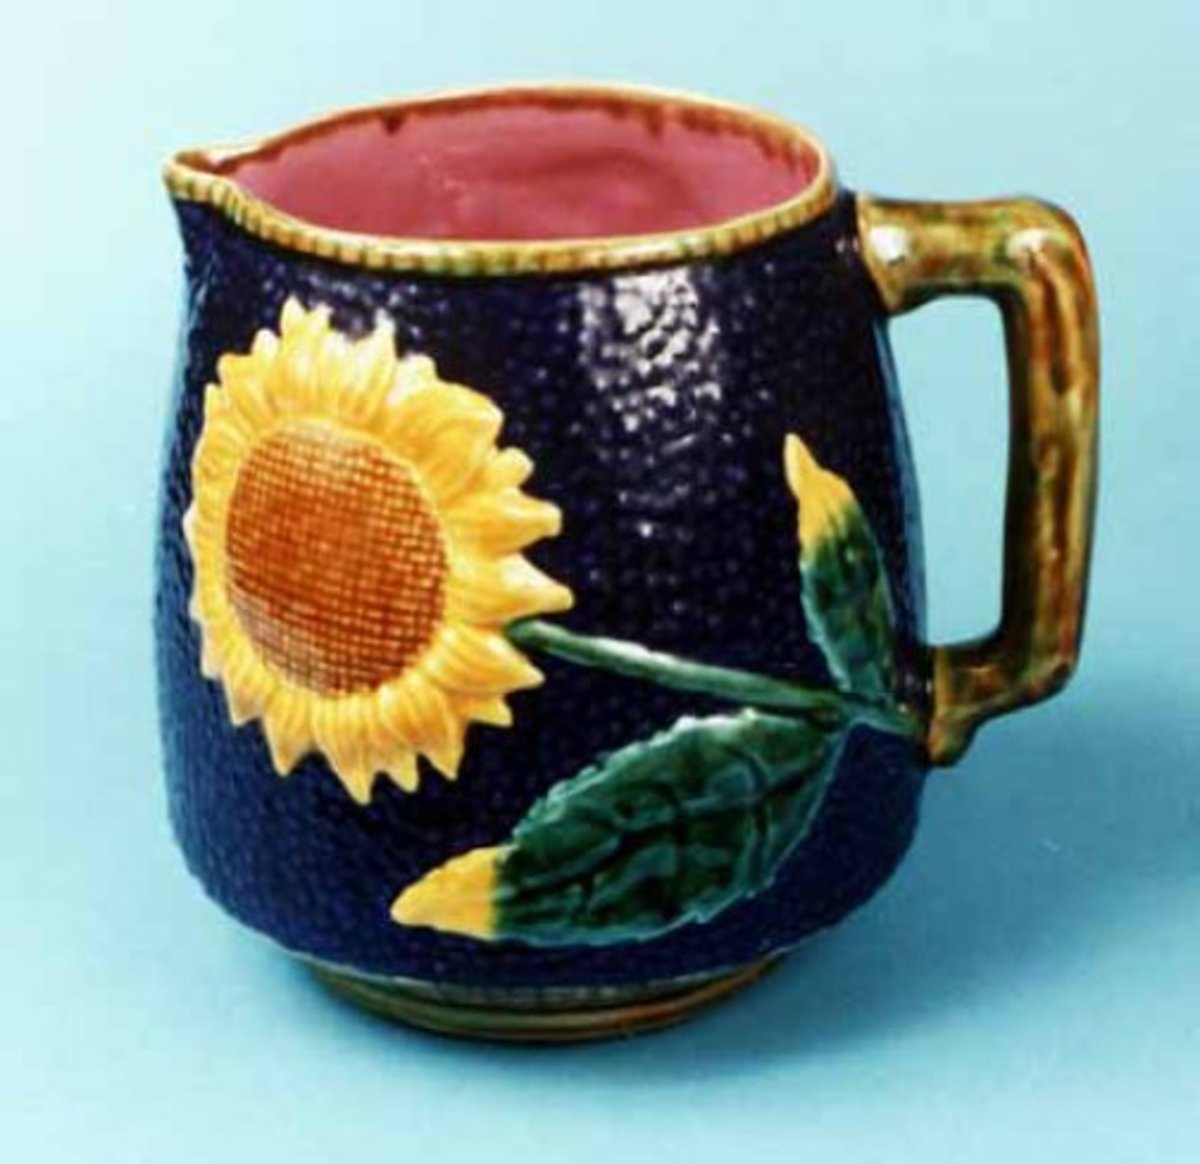 The photo depicts a Sunflower pattern pitcher. The mold for this  pitcher   was taken directly from an old original.Majolica pitcher. The mark of the original pitcher's maker can, Etruscan Majolica, appears on the bottom of this reproduction.